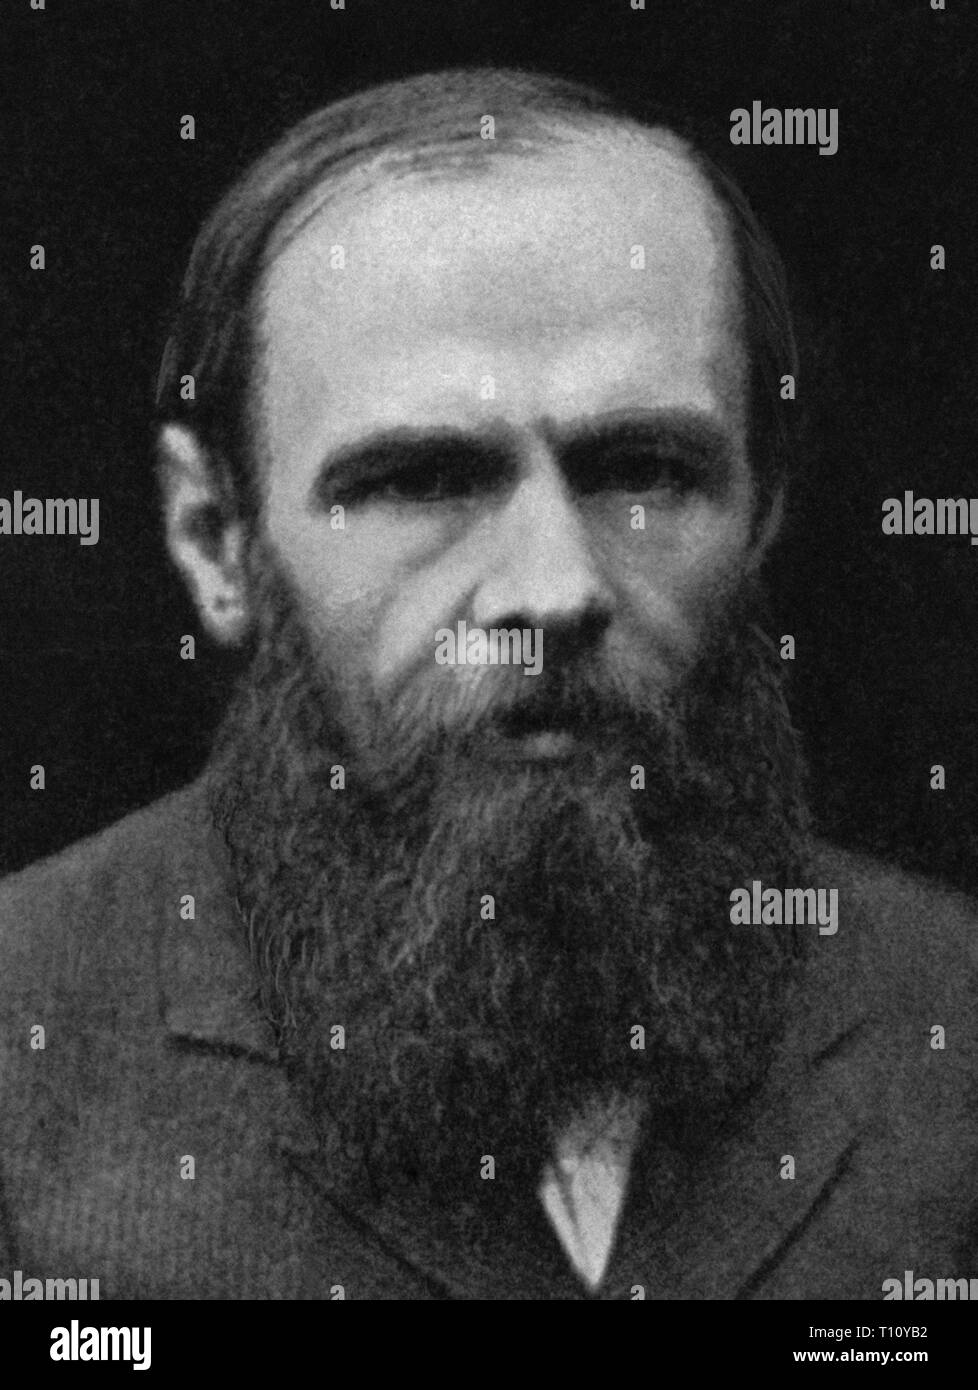 Fyodor Mikhailovich Dostoevsky, sometimes transliterated Dostoyevsky, was a Russian novelist, short story writer, essayist, journalist and philosopher. Scanned from image material in the archives of Press Portrait Service - (formerly Press Portrait Bureau). Stock Photo